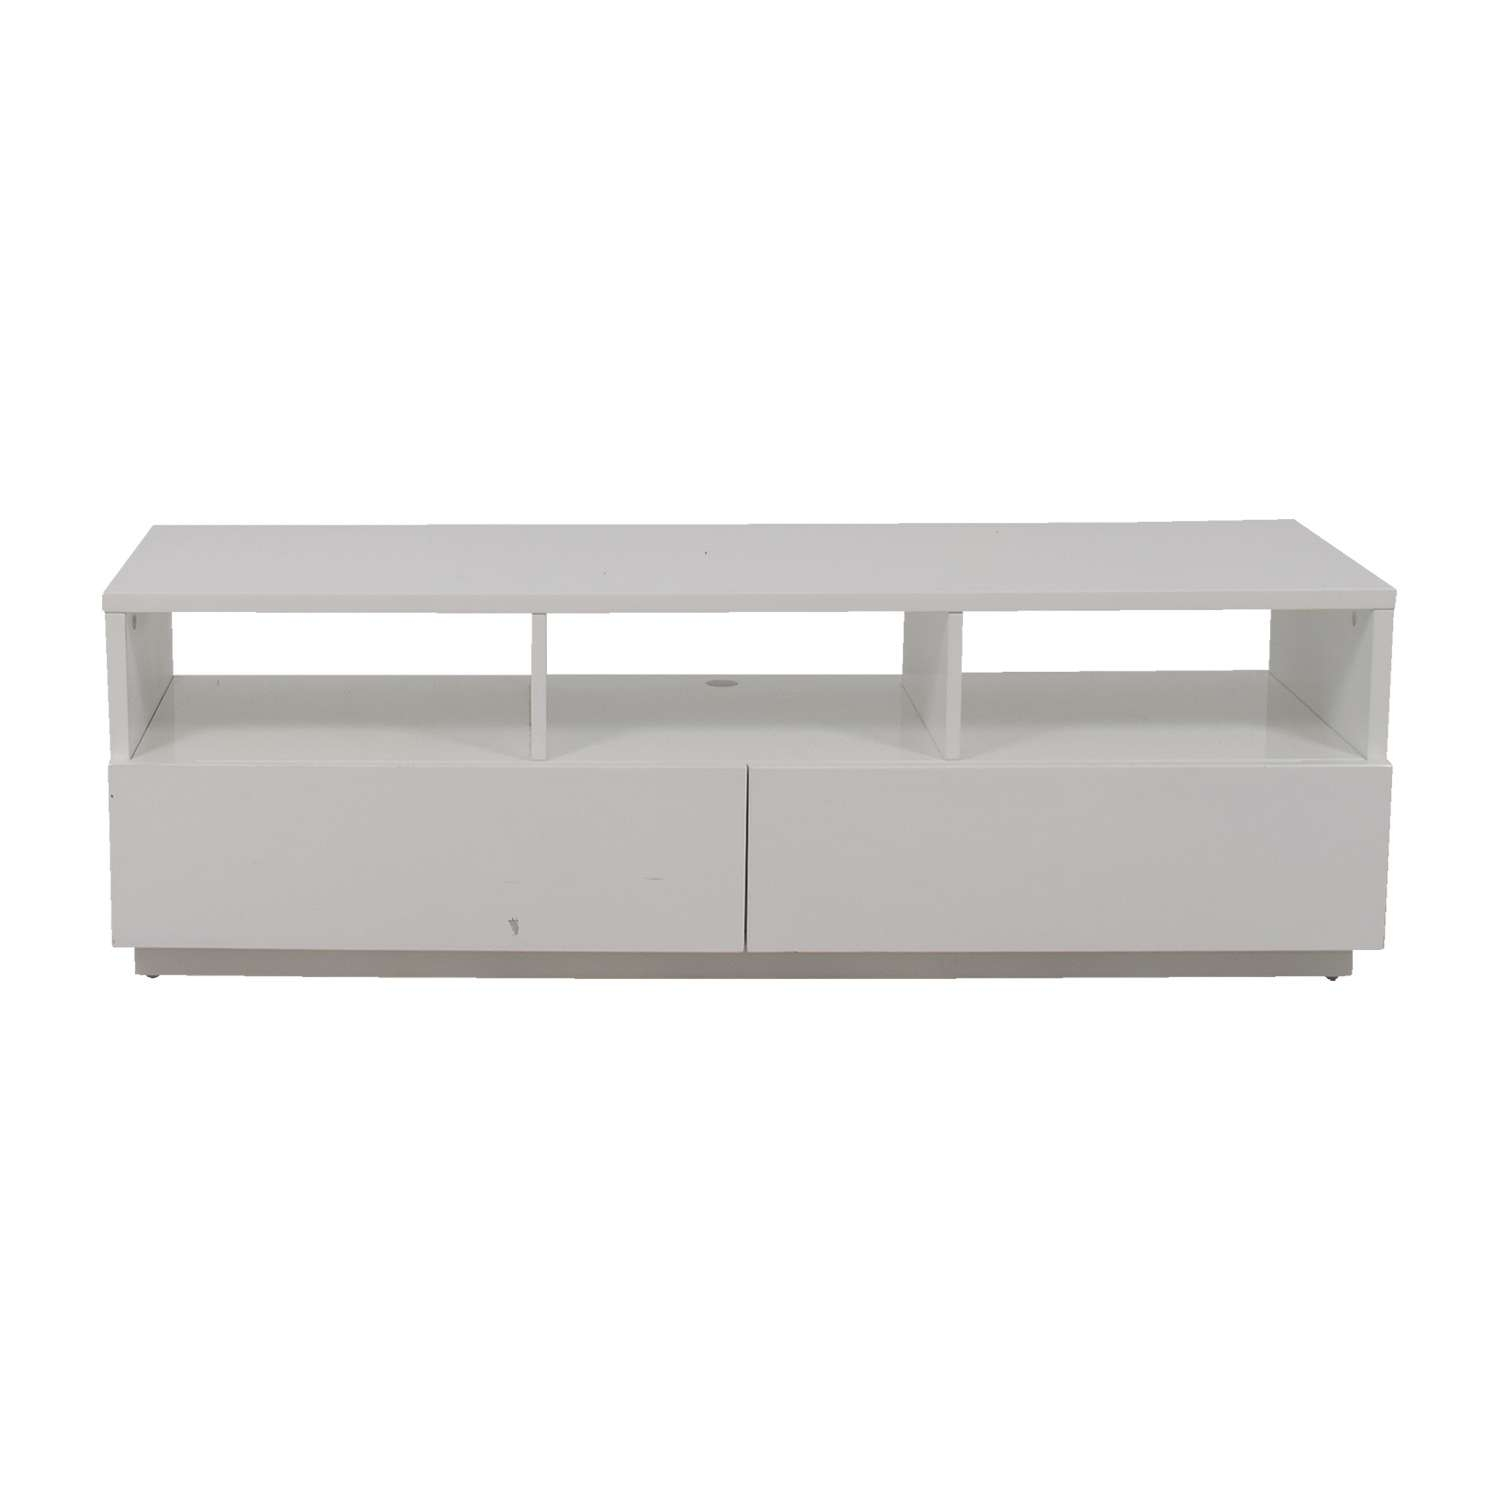 54% Off – Modern White Tv Stand / Storage In White Tv Stands Modern (View 15 of 15)